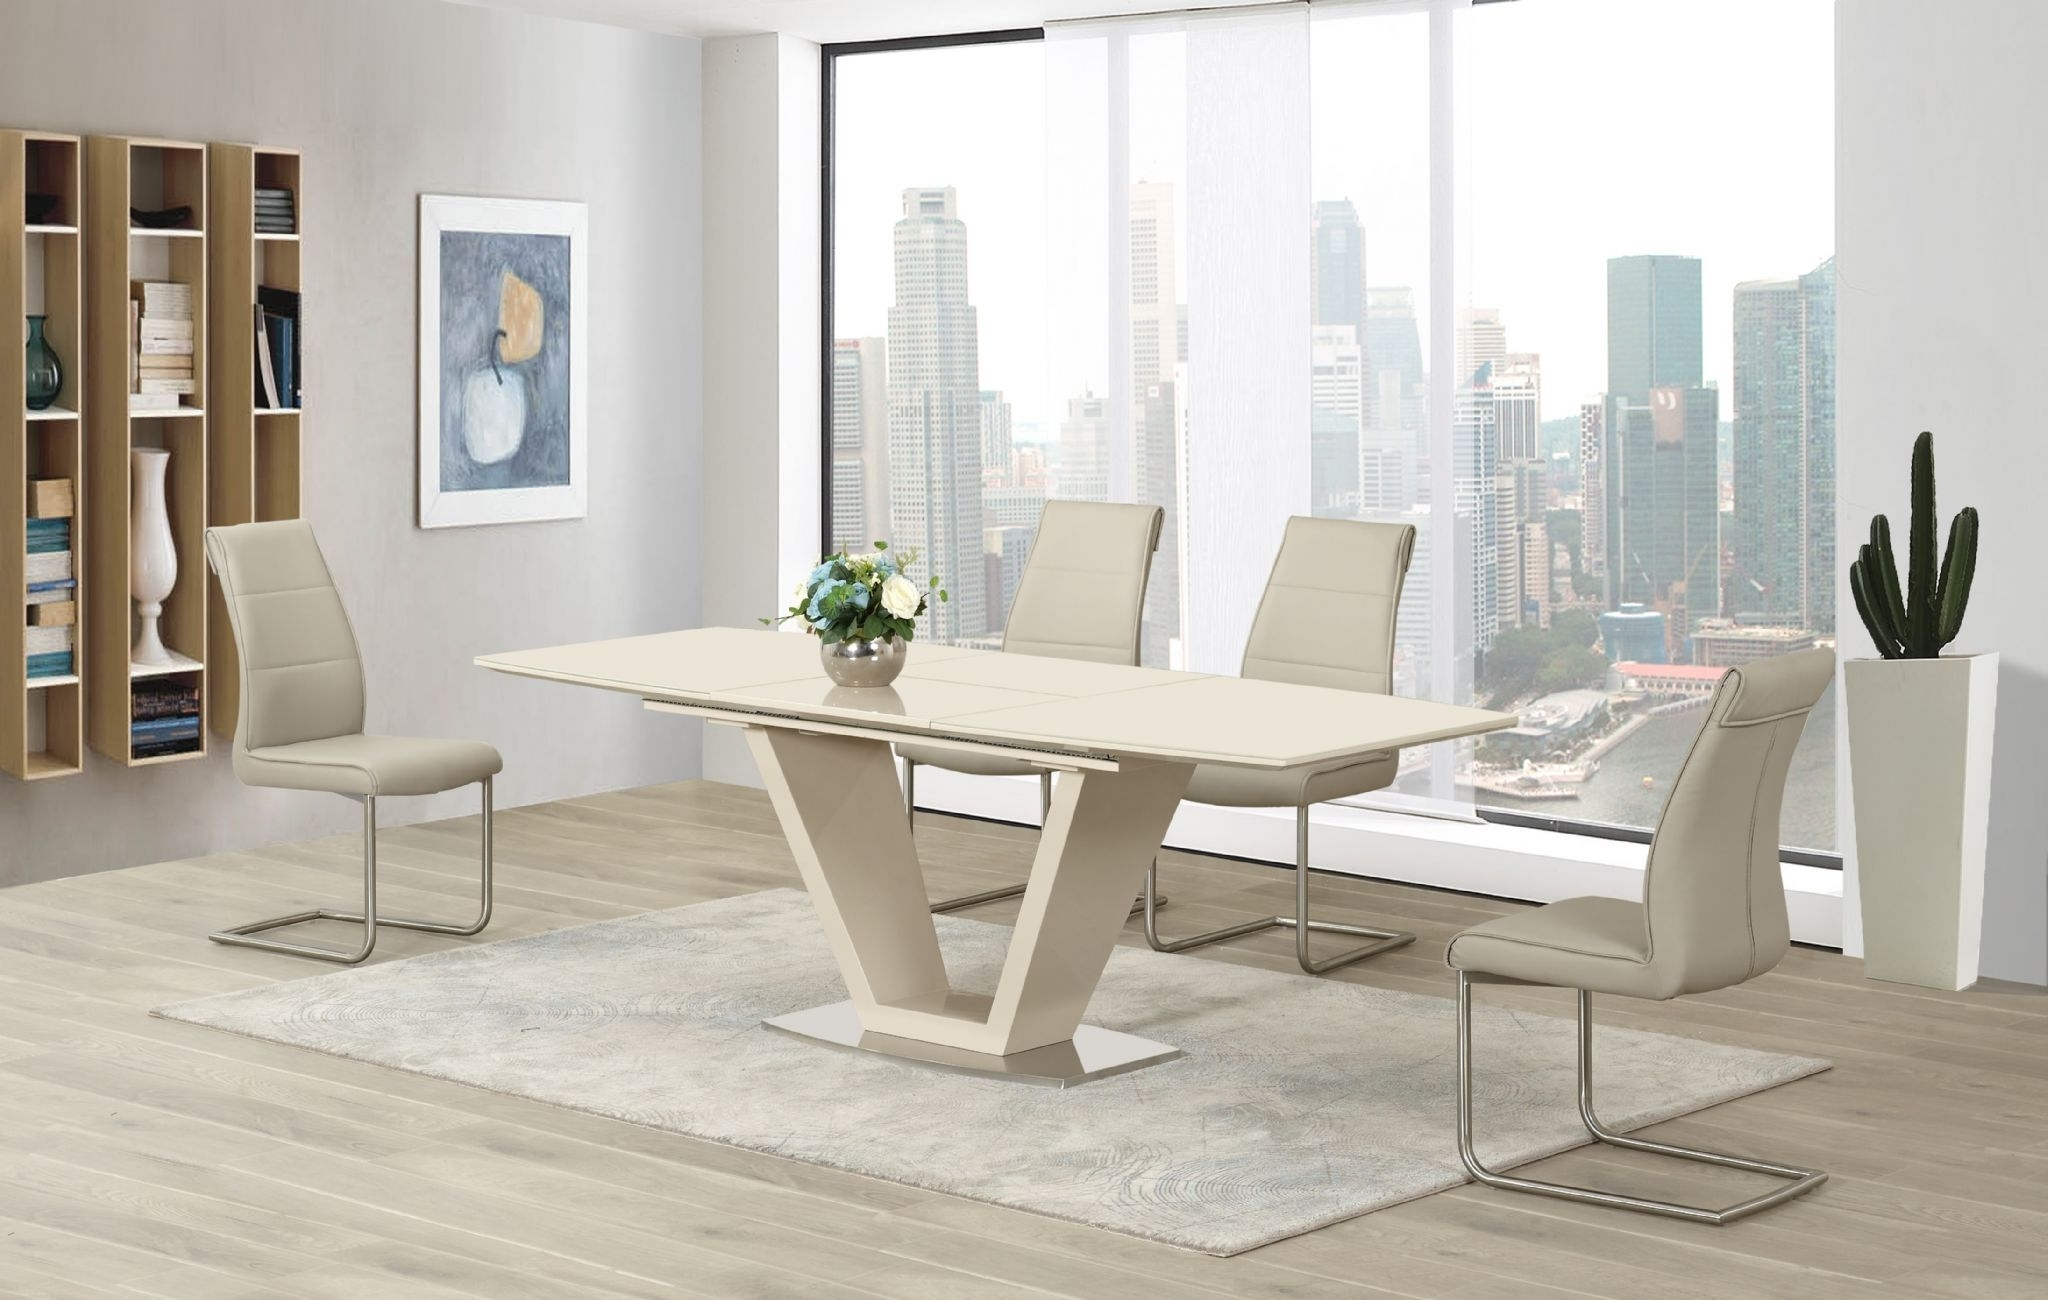 Famous Ga Loriga Cream Gloss Glass Designer Dining Table Extending 160 220 Regarding Large White Gloss Dining Tables (View 15 of 25)